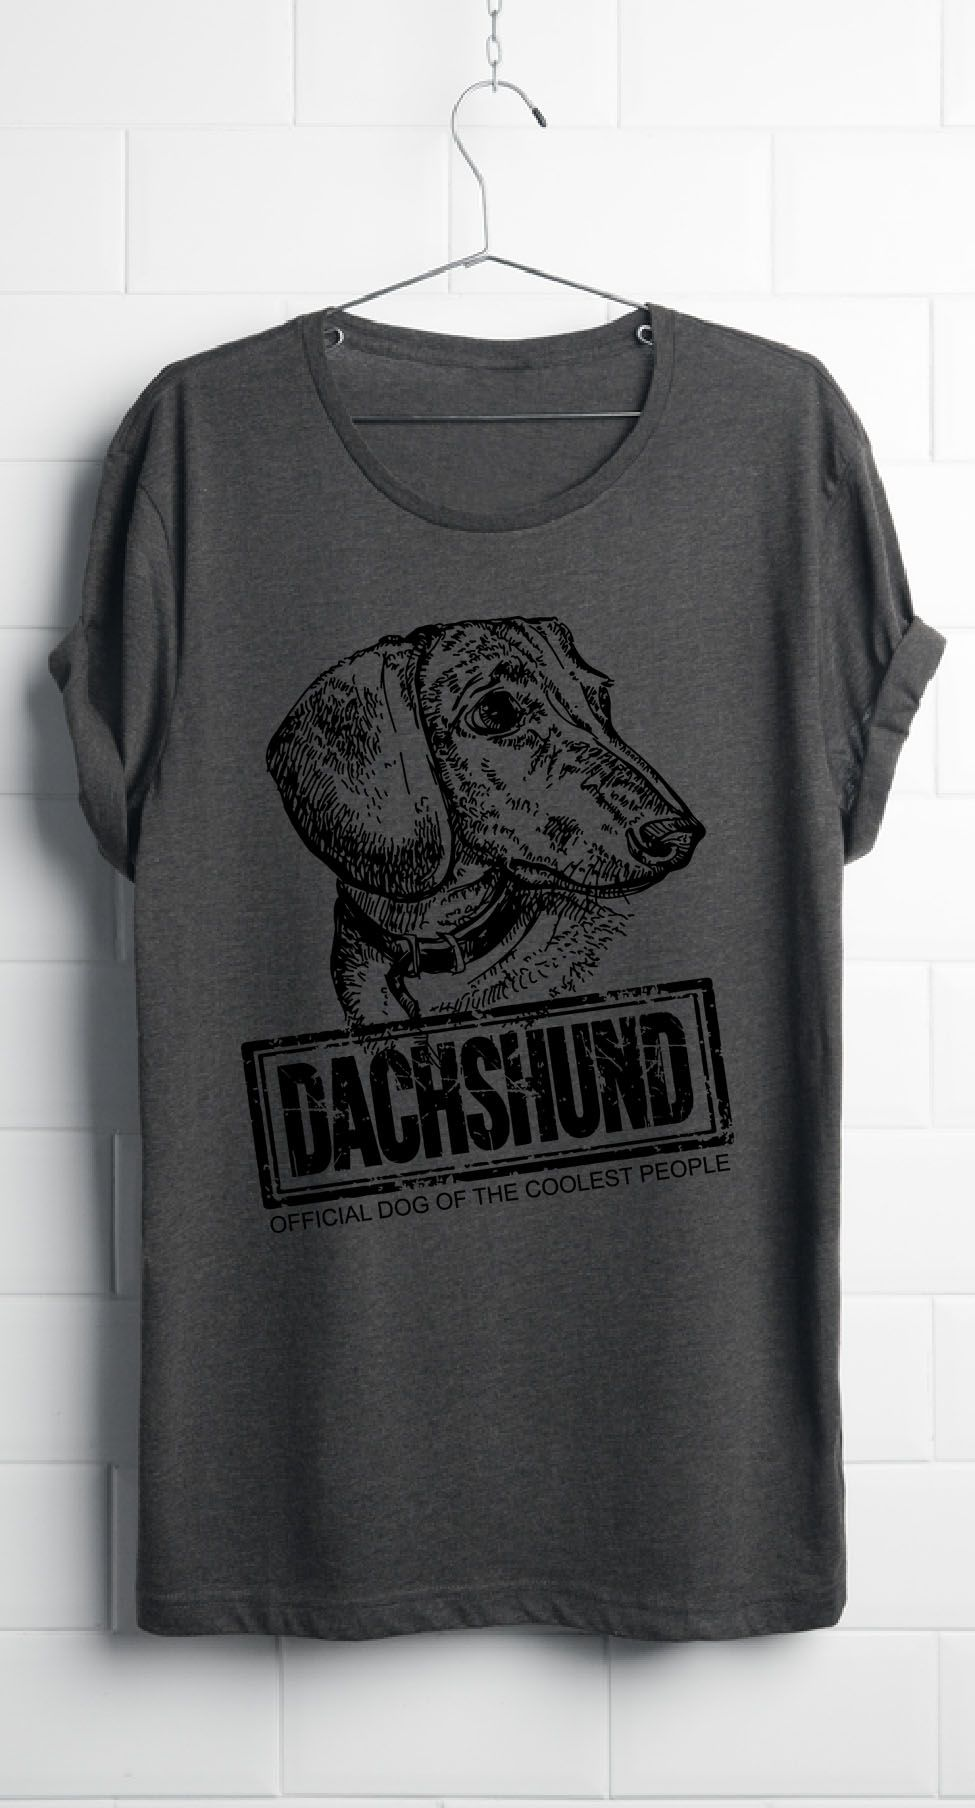 OFFICIAL DOG OF THE COOLEST PEOPLE Dachshund wiener